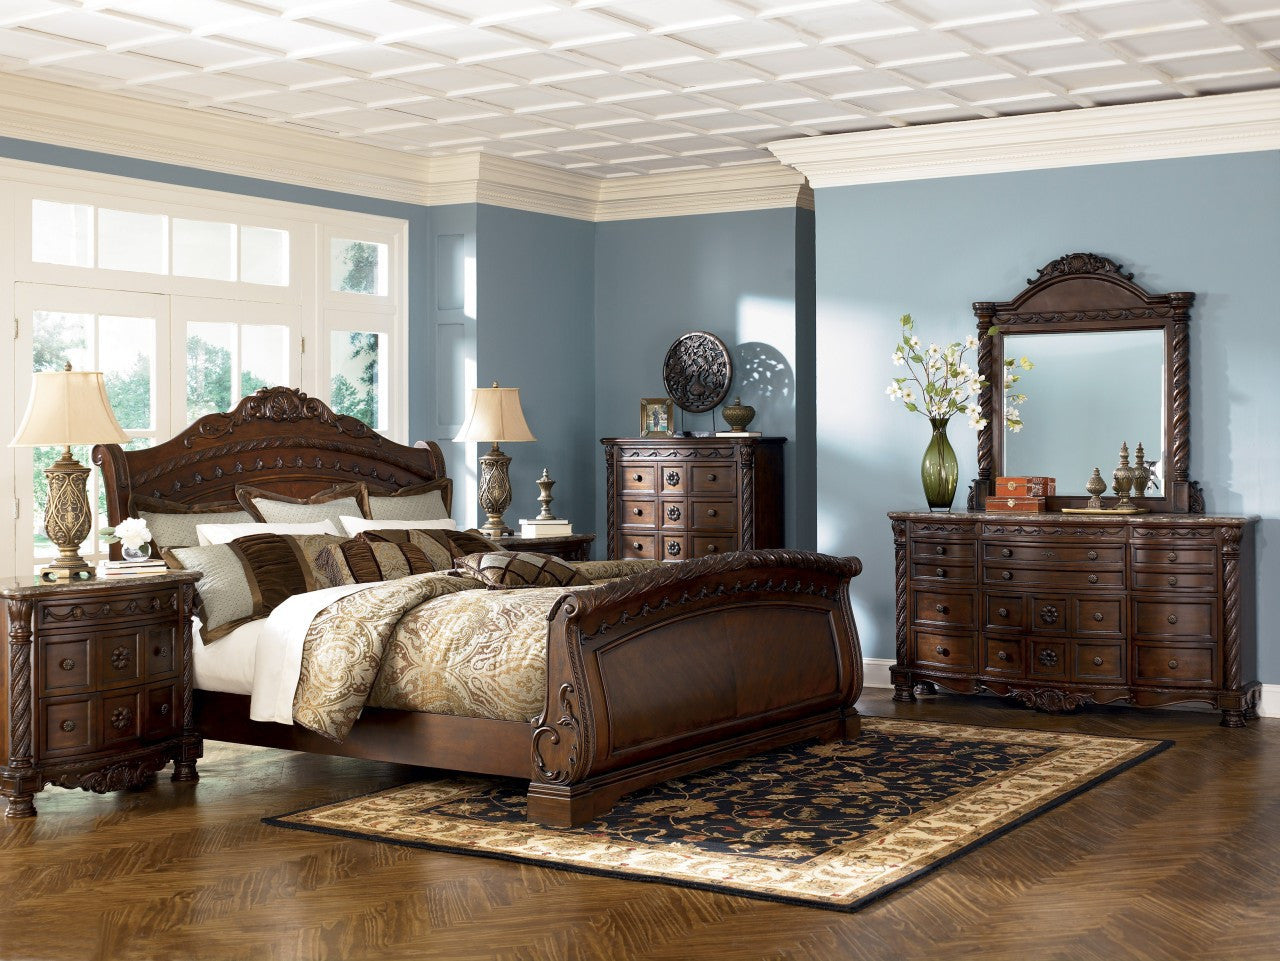 North Shore Sleigh King Bedroom Set By Ashley Furniture My - Ashley furniture northshore bedroom set